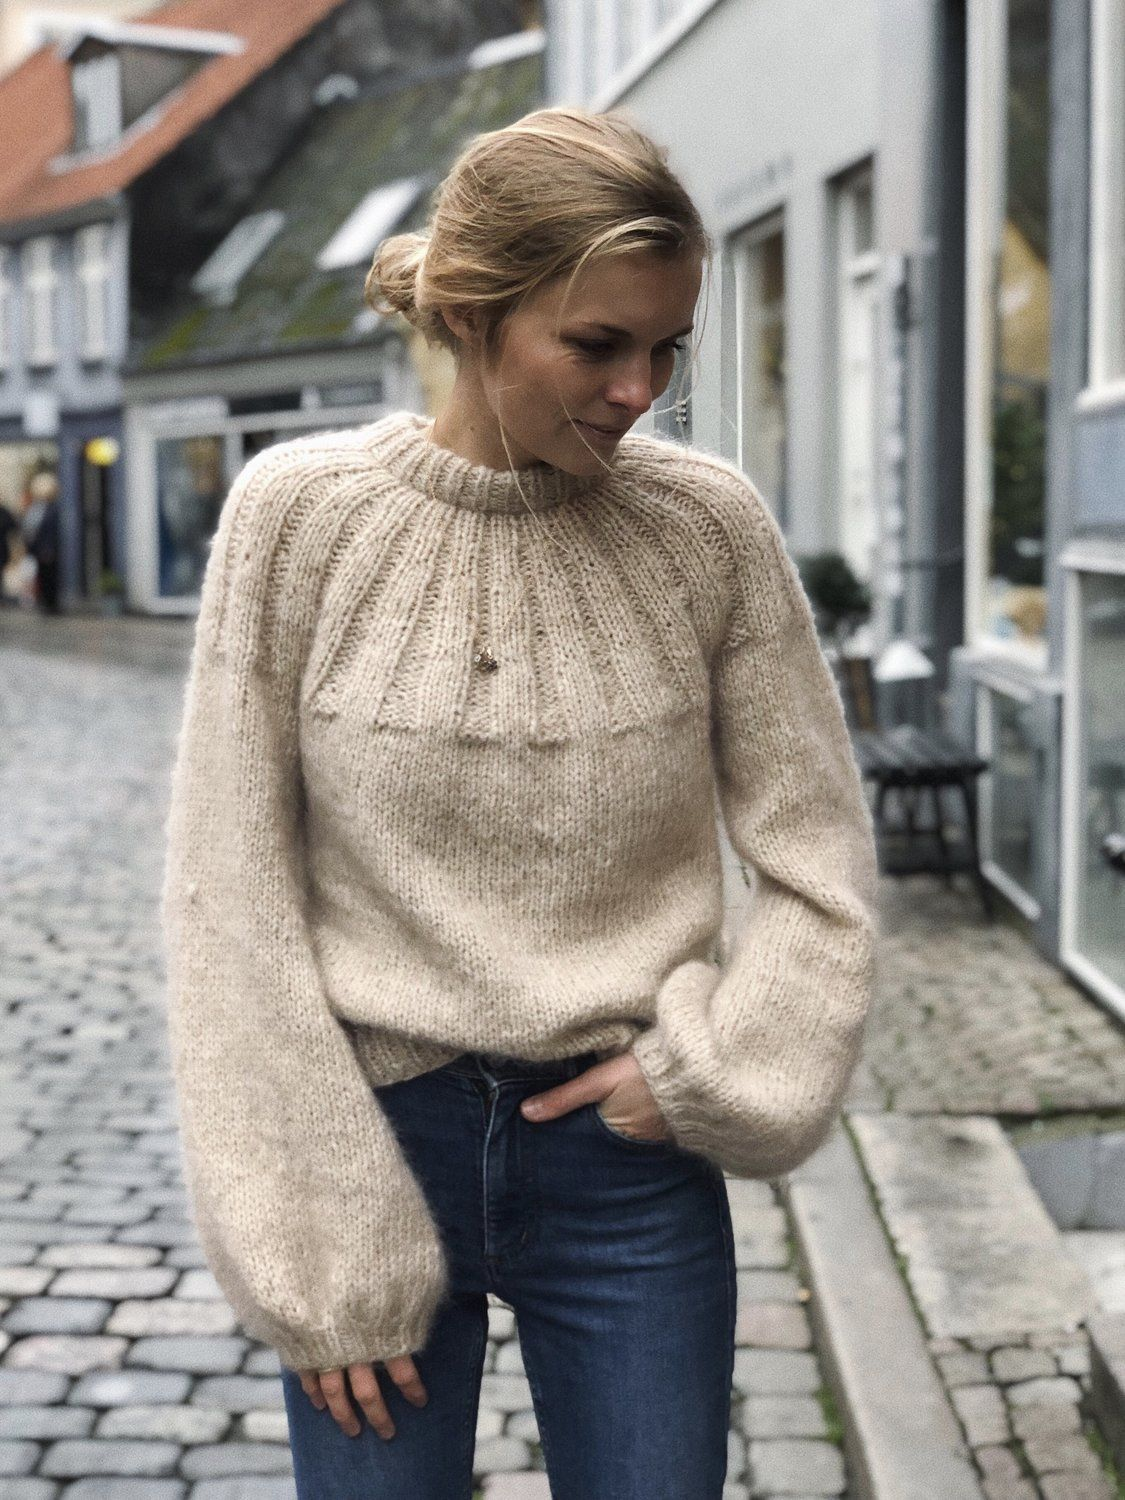 78681f37f Sunday Sweater minimalist scandinavian inspired style outfit ideas and  inspo blogger streetstyle fashion inspiration